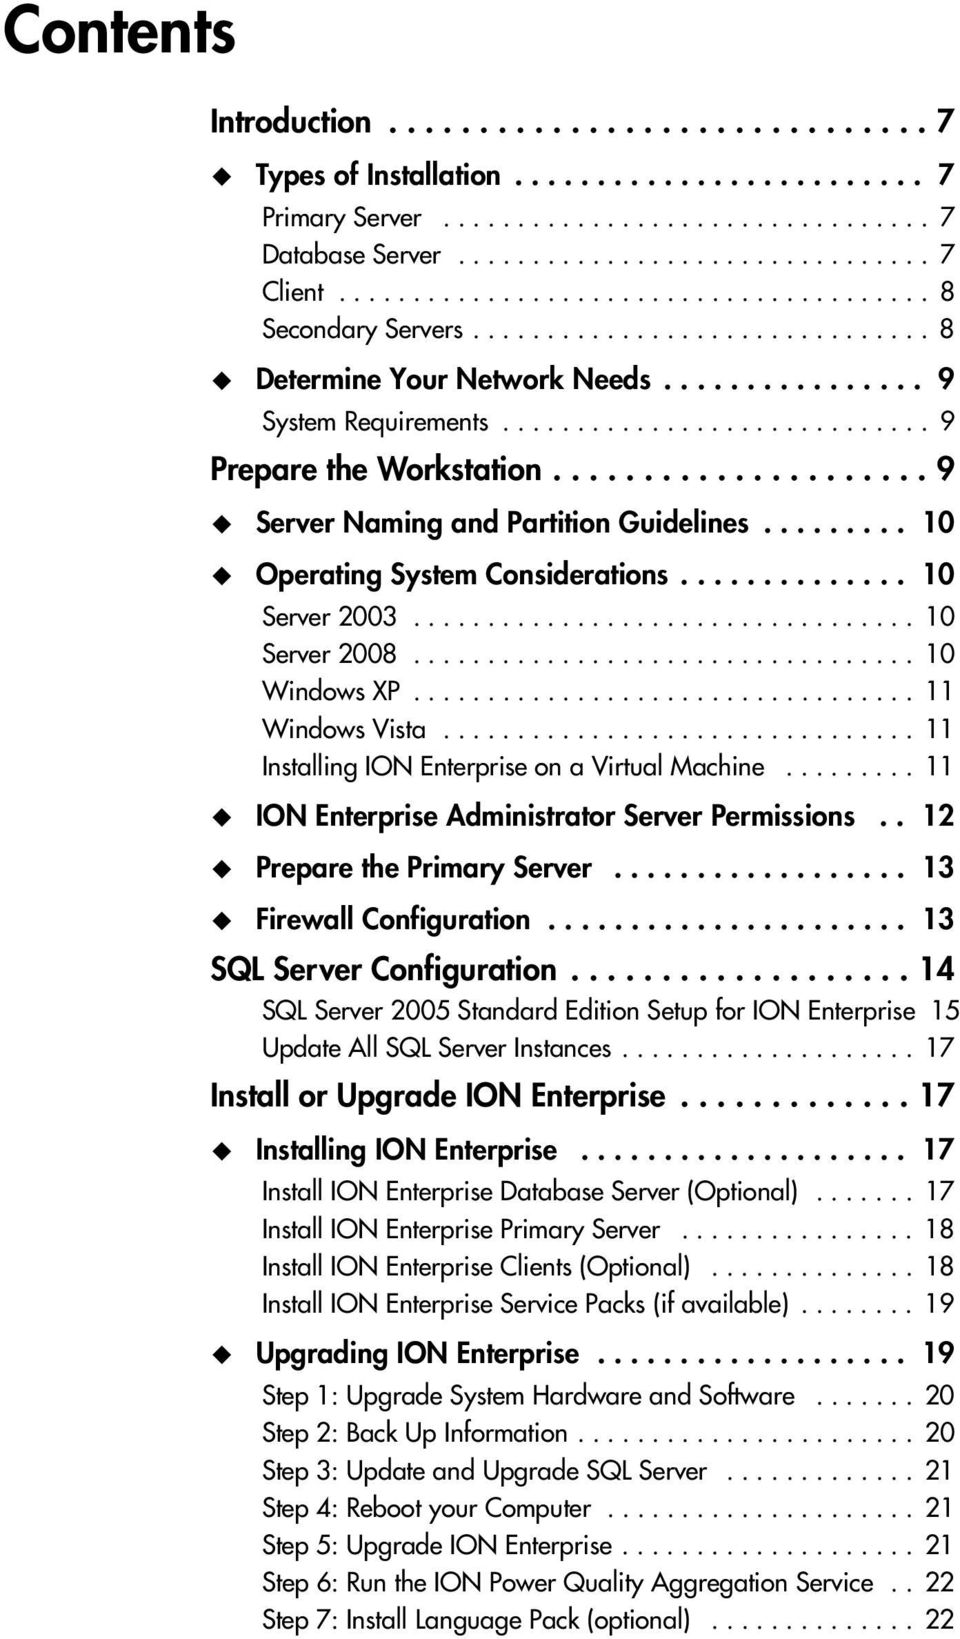 .................... 9 Server Naming and Partition Guidelines......... 10 Operating System Considerations.............. 10 Server 2003.................................. 10 Server 2008.................................. 10 Windows XP.